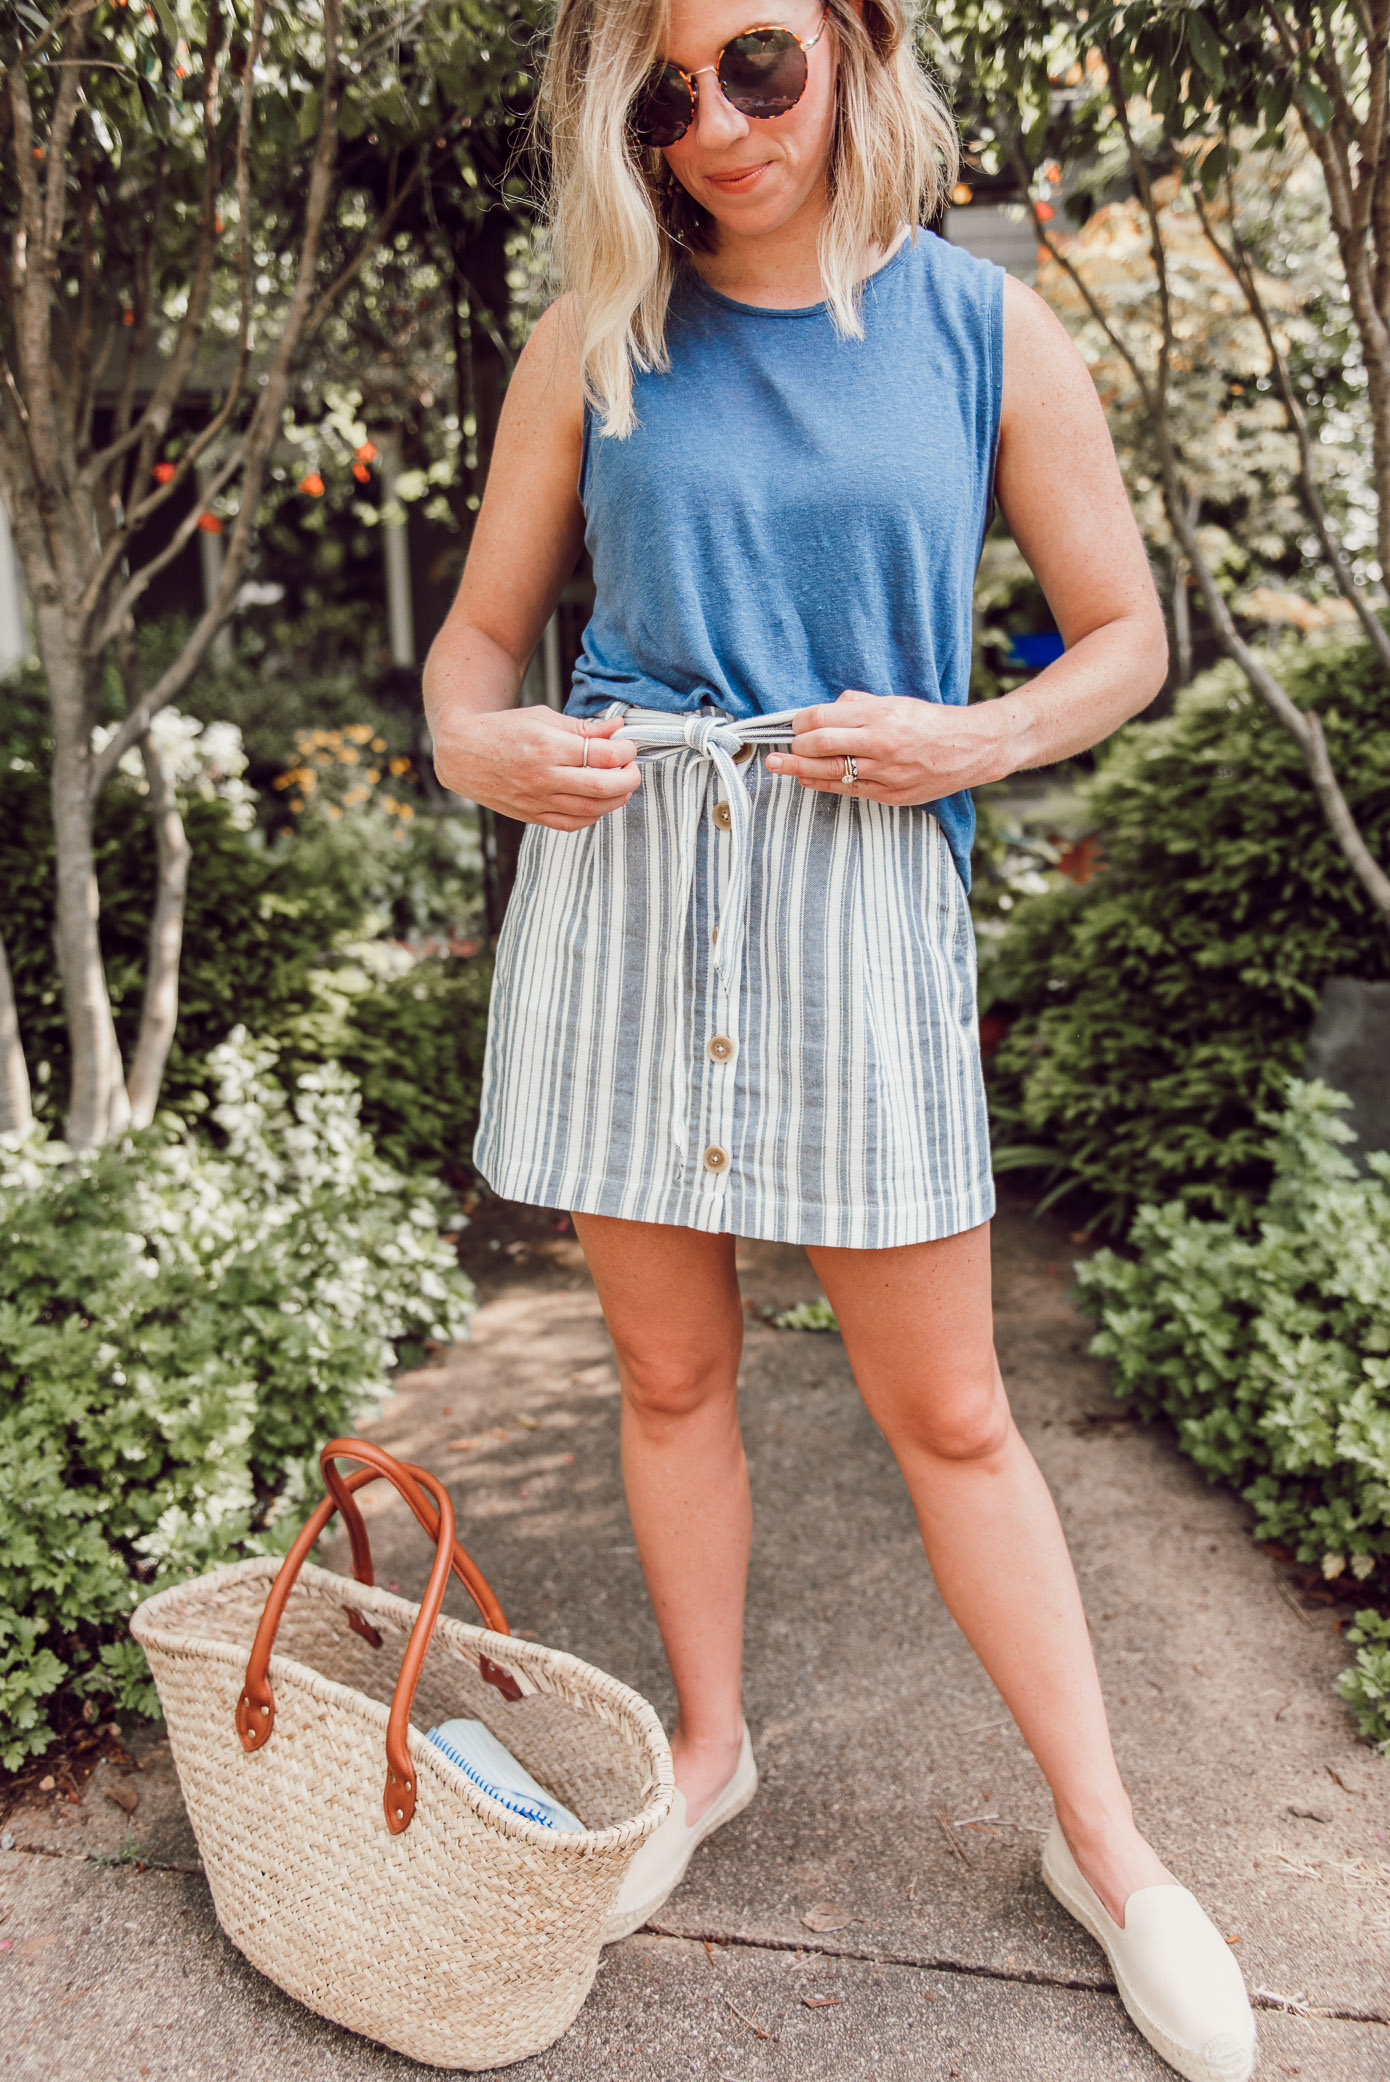 Linen Muscle Tank, Linen Striped Mini Skirt, Large Straw Tote, Neutral Espadrille Loafers | Louella Reese